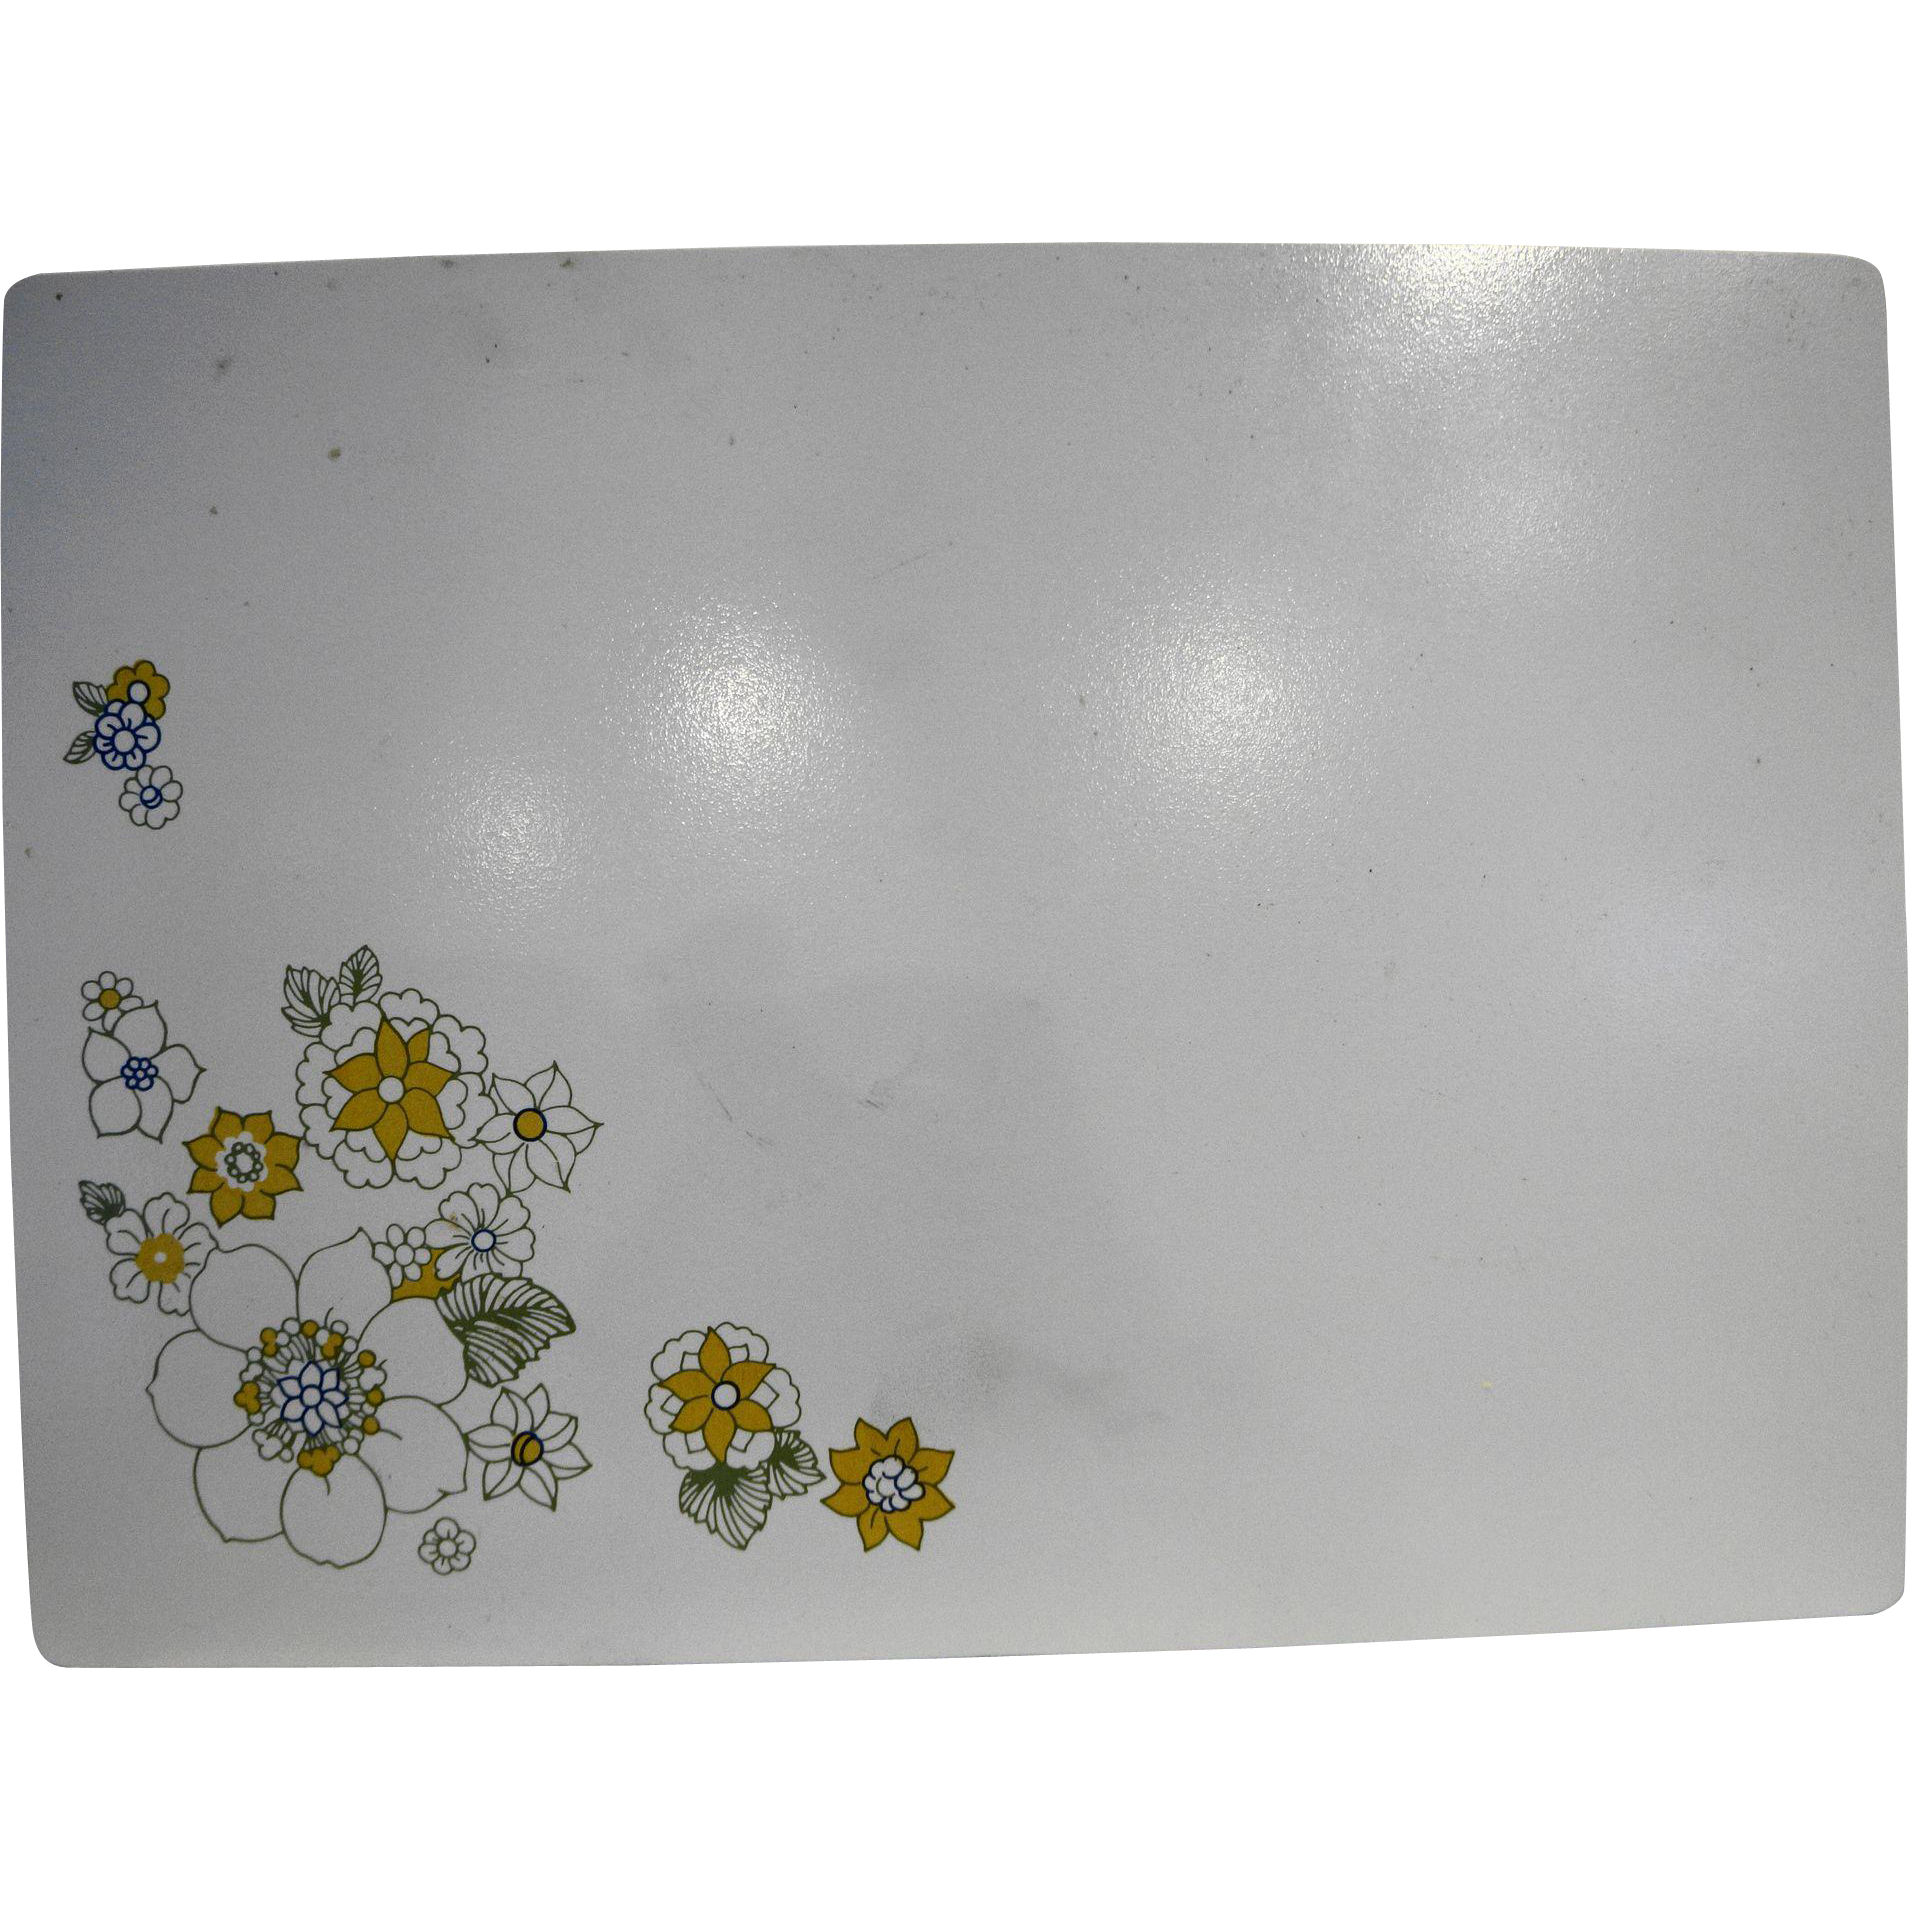 Corning Floral Bouquet Yellow White Counter Saver 11 x 15 Cutting Board Trivet Hot Pad